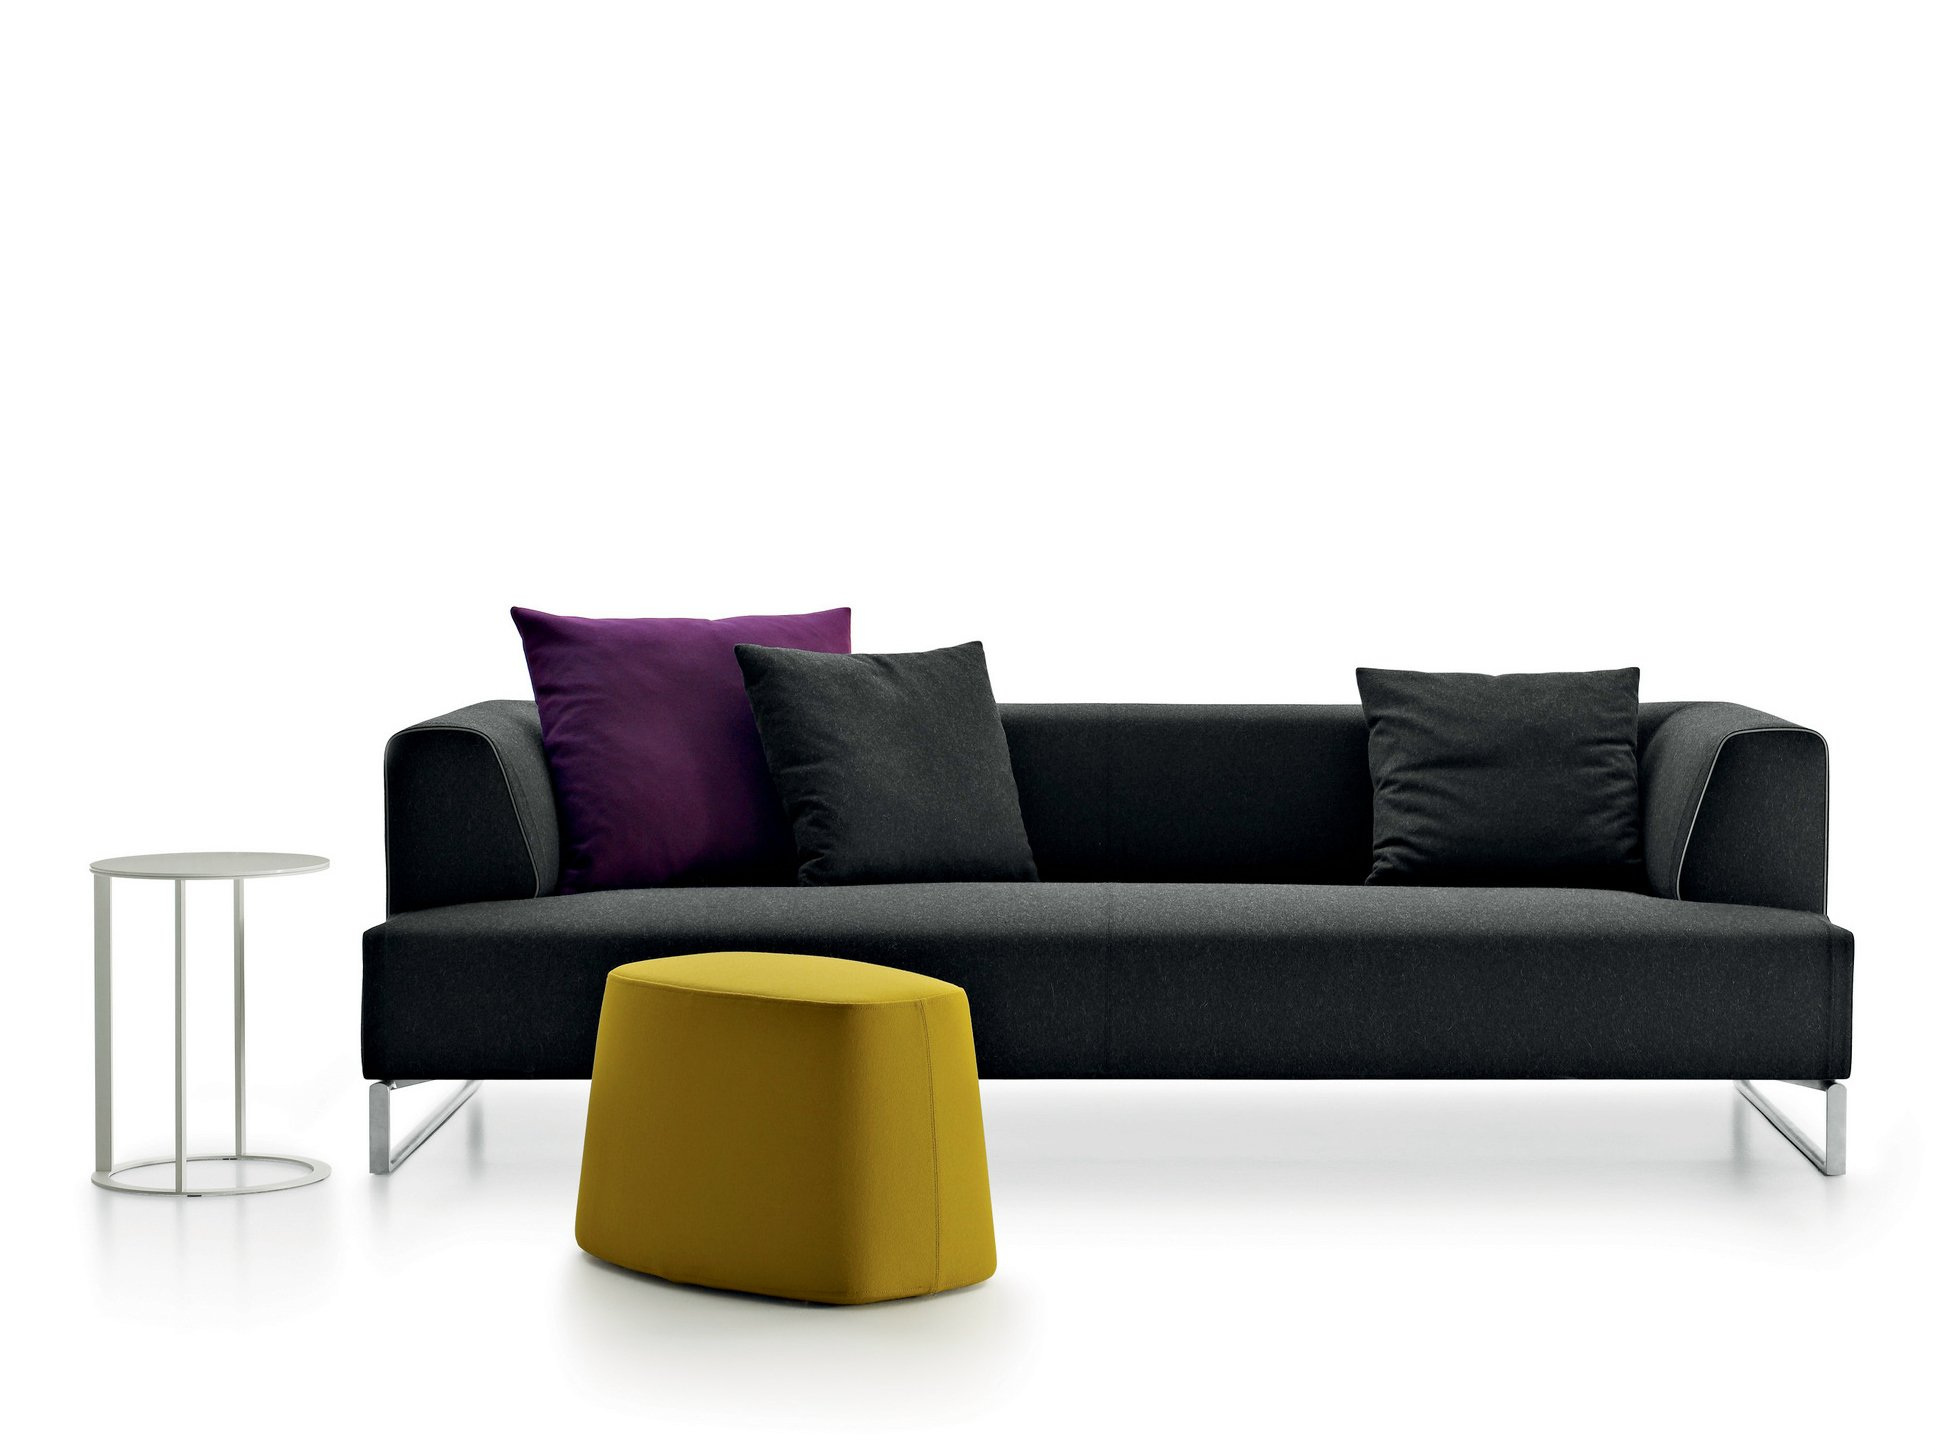 solo 39 14 sofa by b b italia design antonio citterio. Black Bedroom Furniture Sets. Home Design Ideas